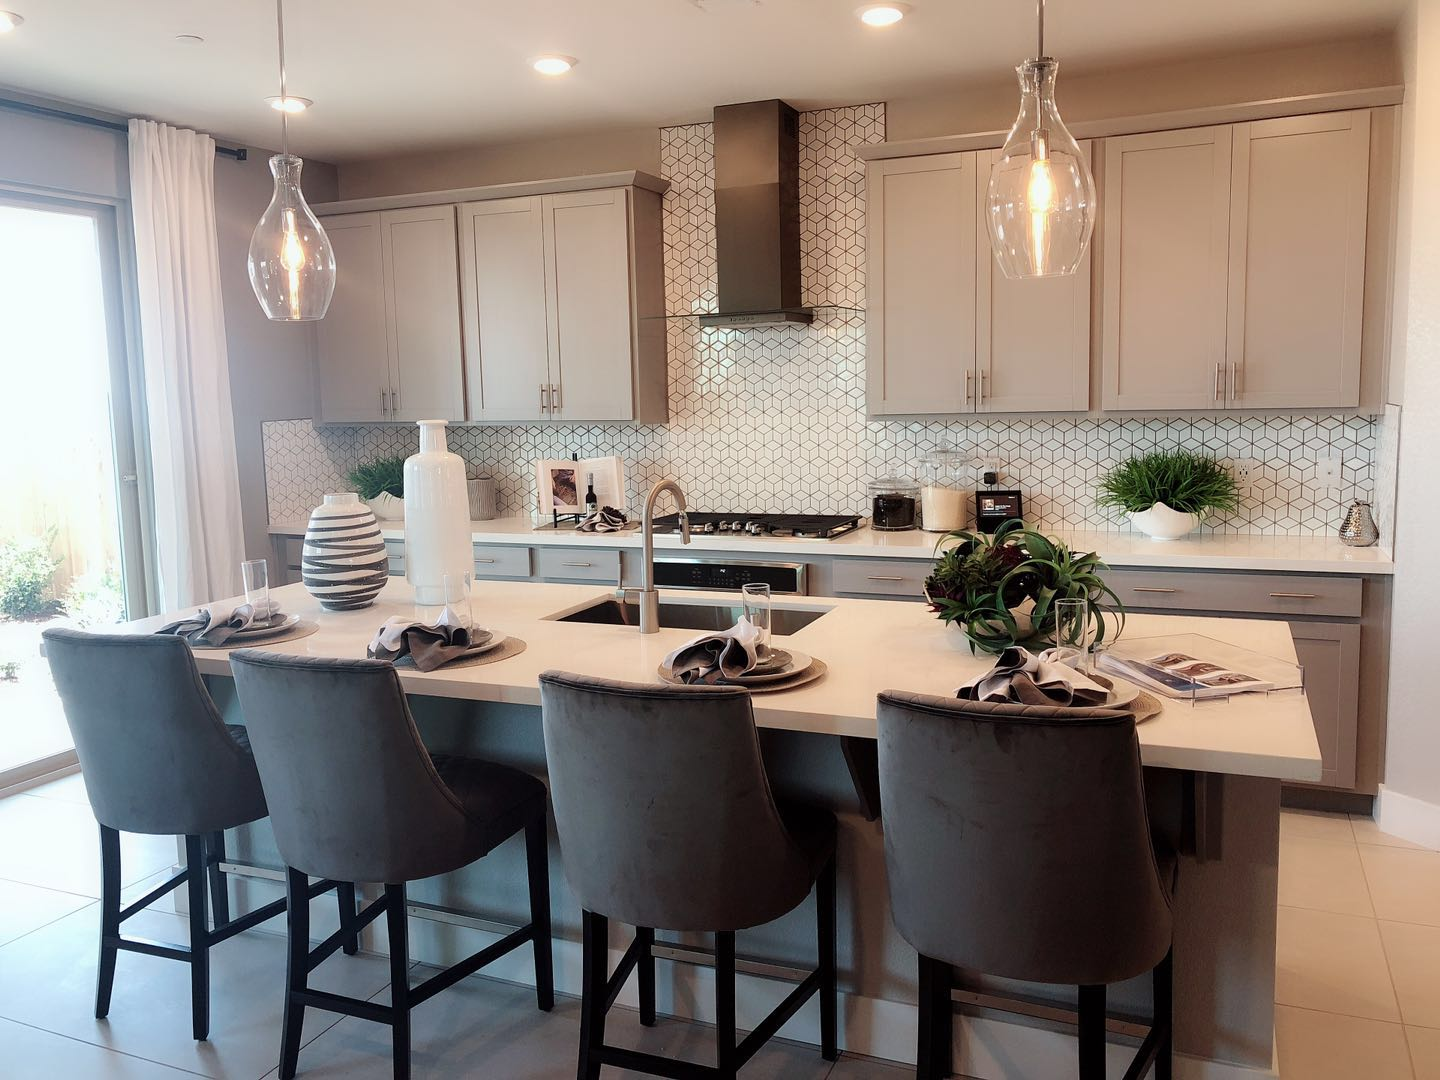 Highly profitable kitchen design&assembly business